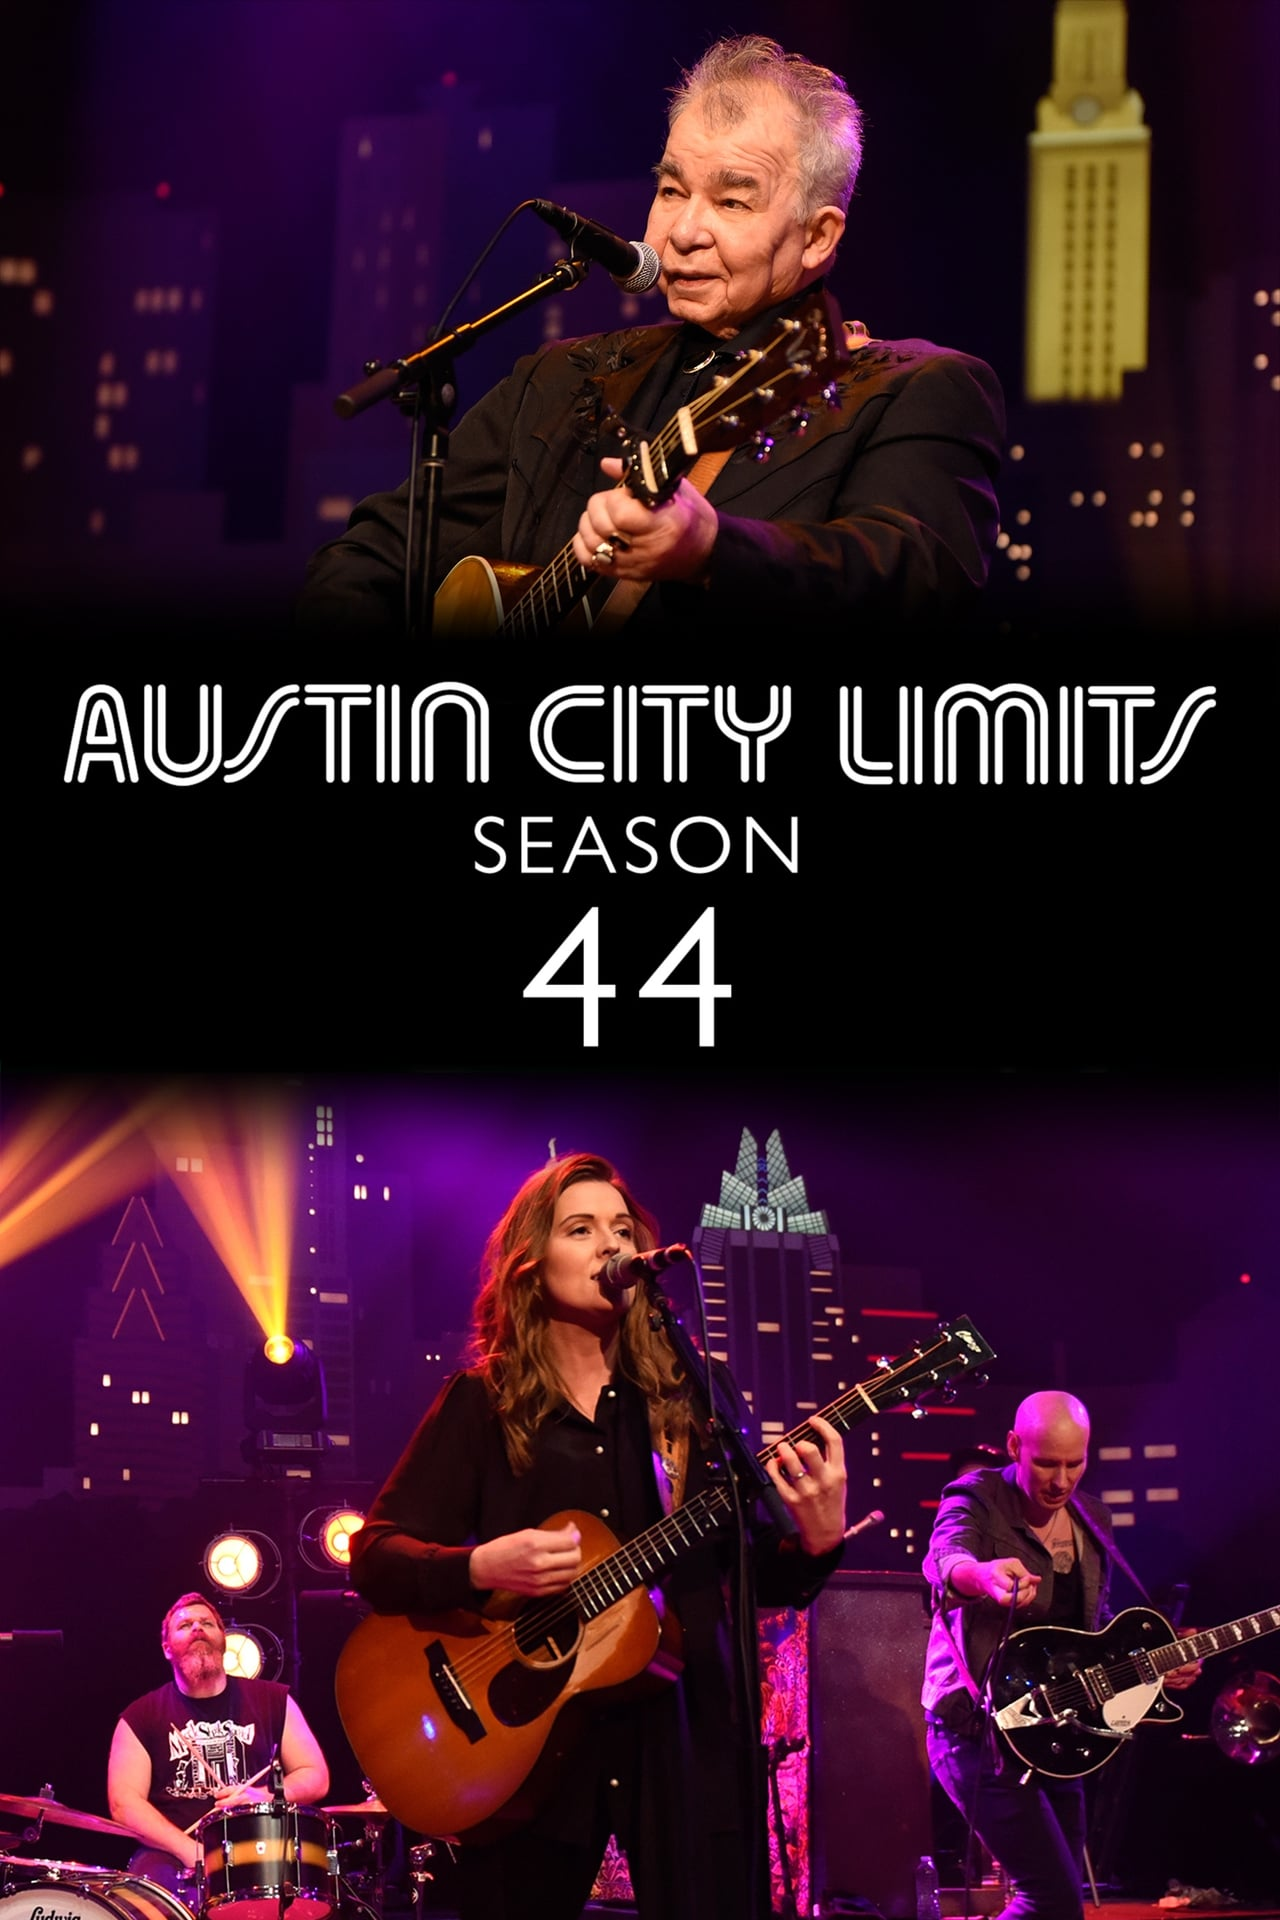 Putlocker Austin City Limits Season 44 (2018)